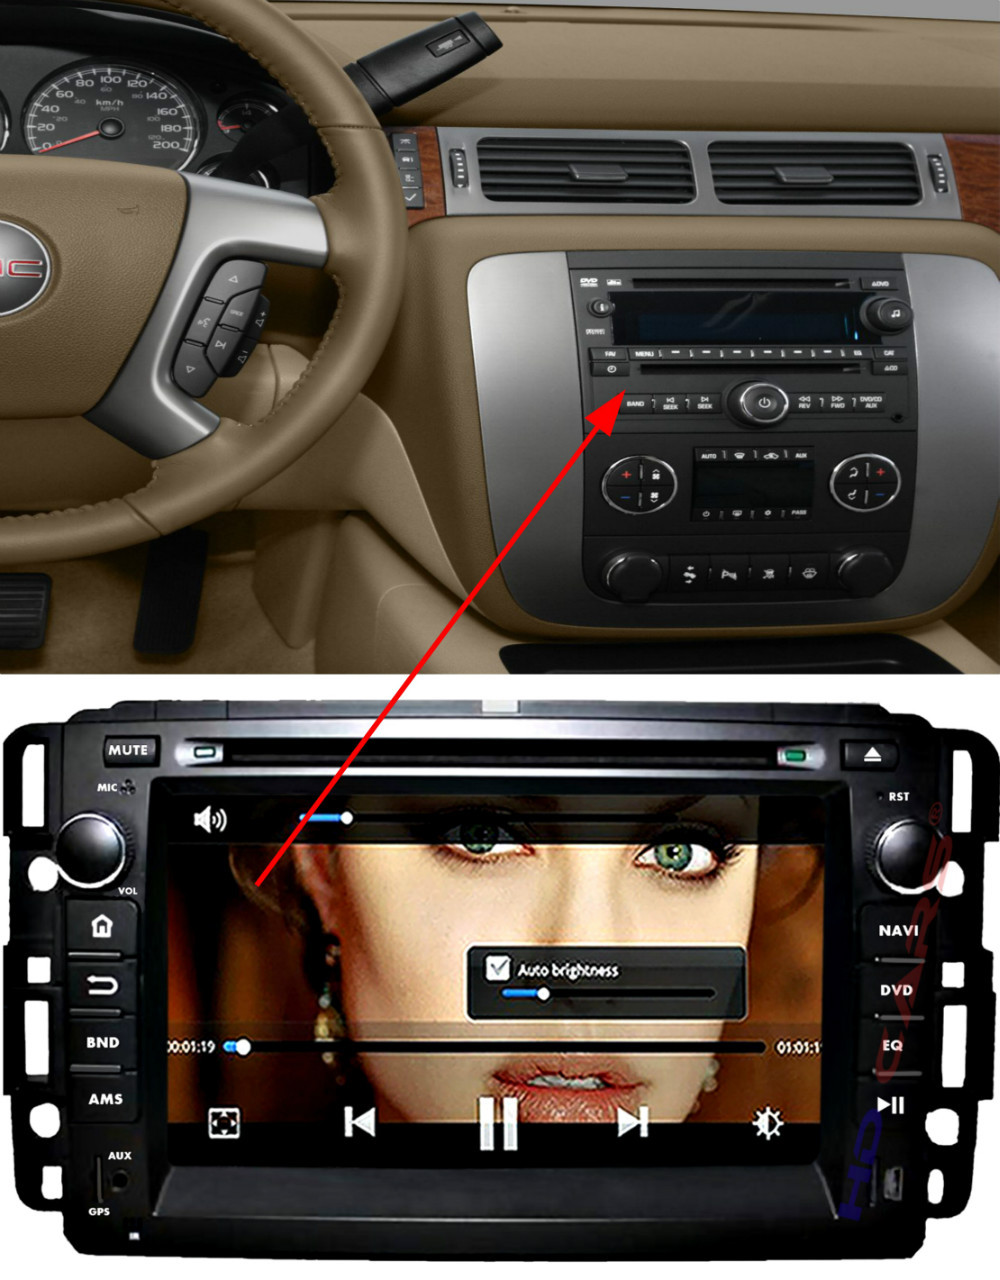 Fit for GMC Yukon Tahoe CHEVY SILVERADO SIERRA (07-12) Capacitive Multi-Touch Android 4.4.2 CAR DVD PLAYER with gps(China (Mainland))